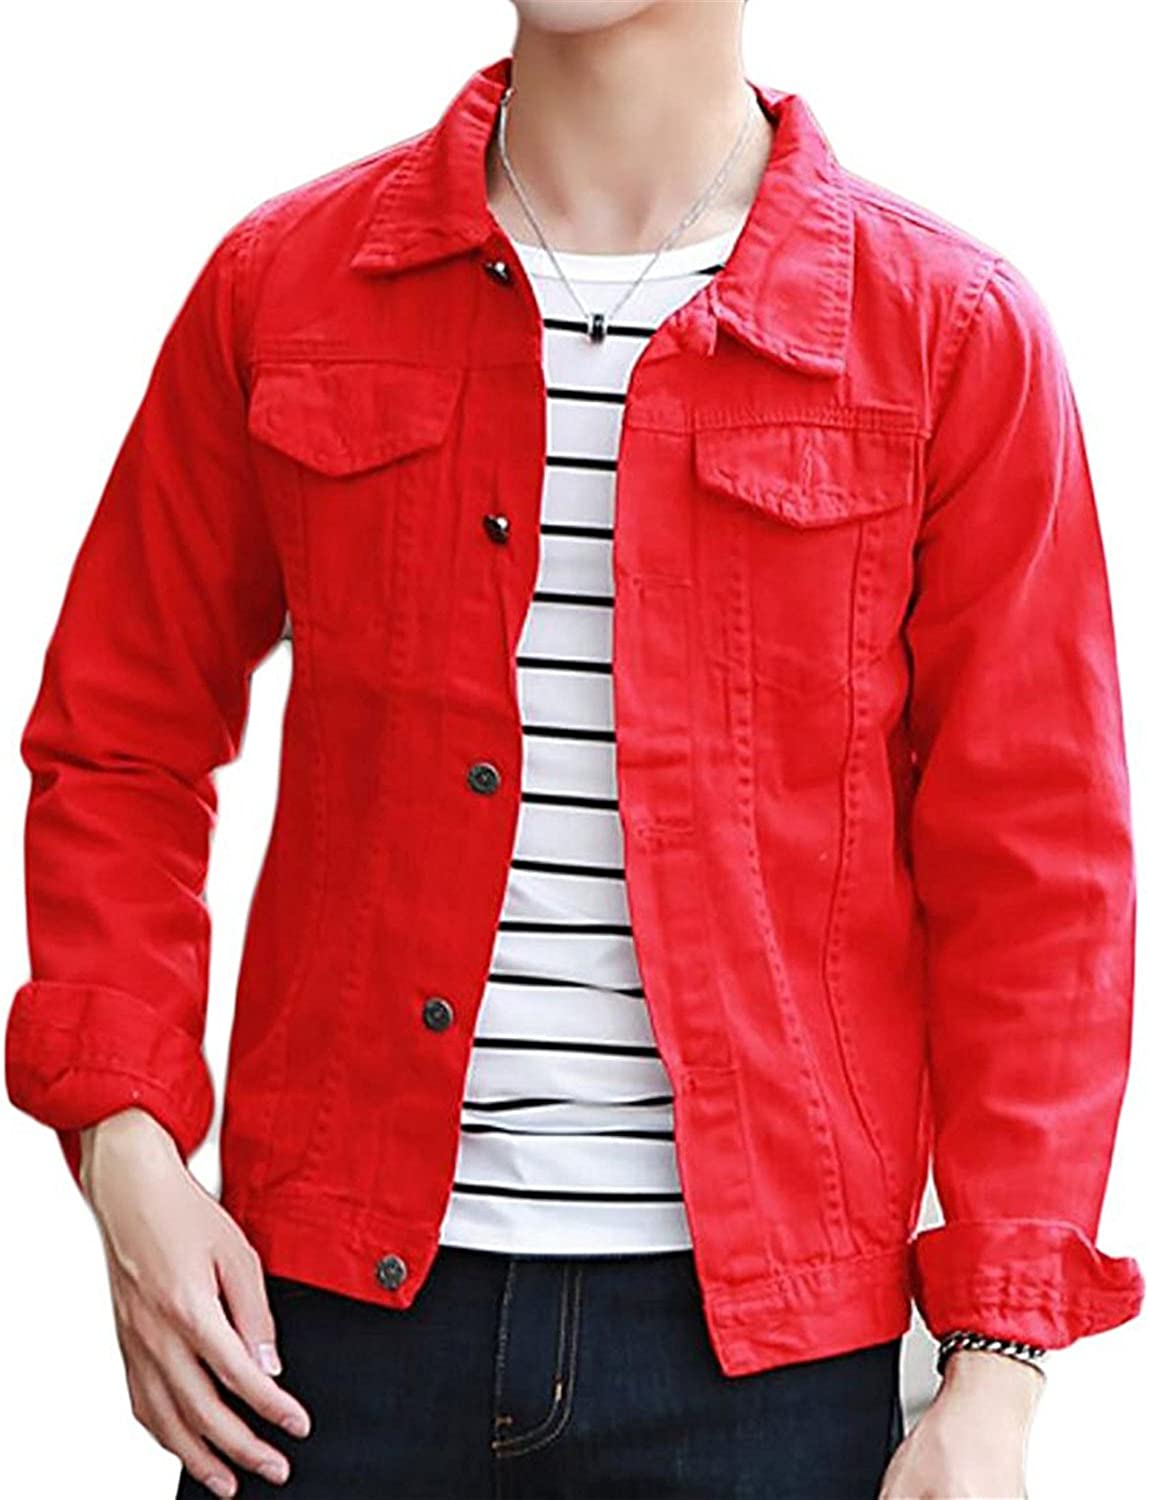 0d5e5f0b0380af Josherly Men's Casual Cotton Solid Solid Solid Long Sleeve Denim Jacket  Outwear 529415